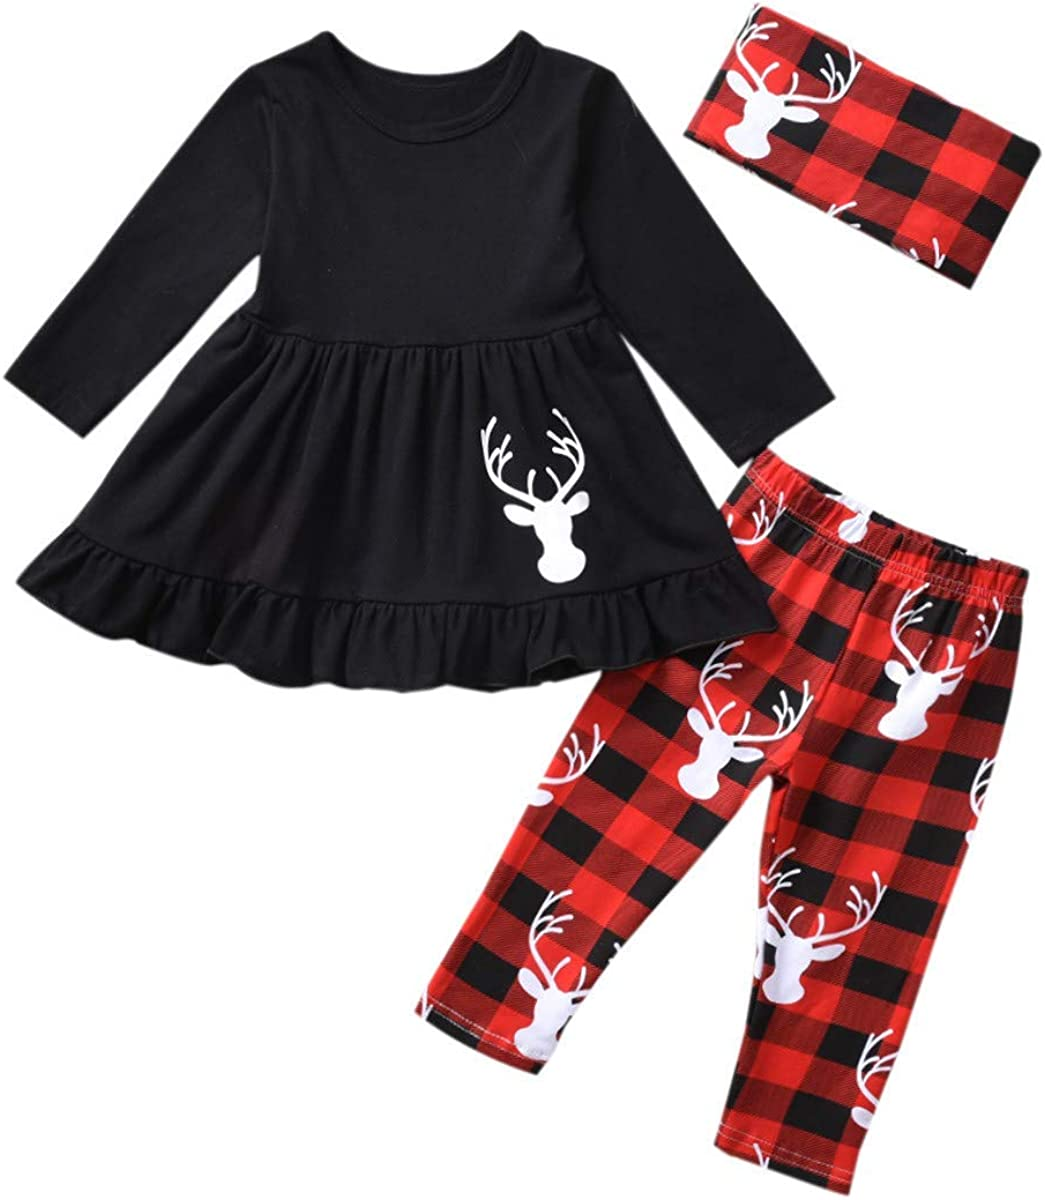 Toddler Girls Christmas Outfits, Baby Girl Tunic Drees Tops Buffalo Plaid Pants Scarf Deer Winter Clothes